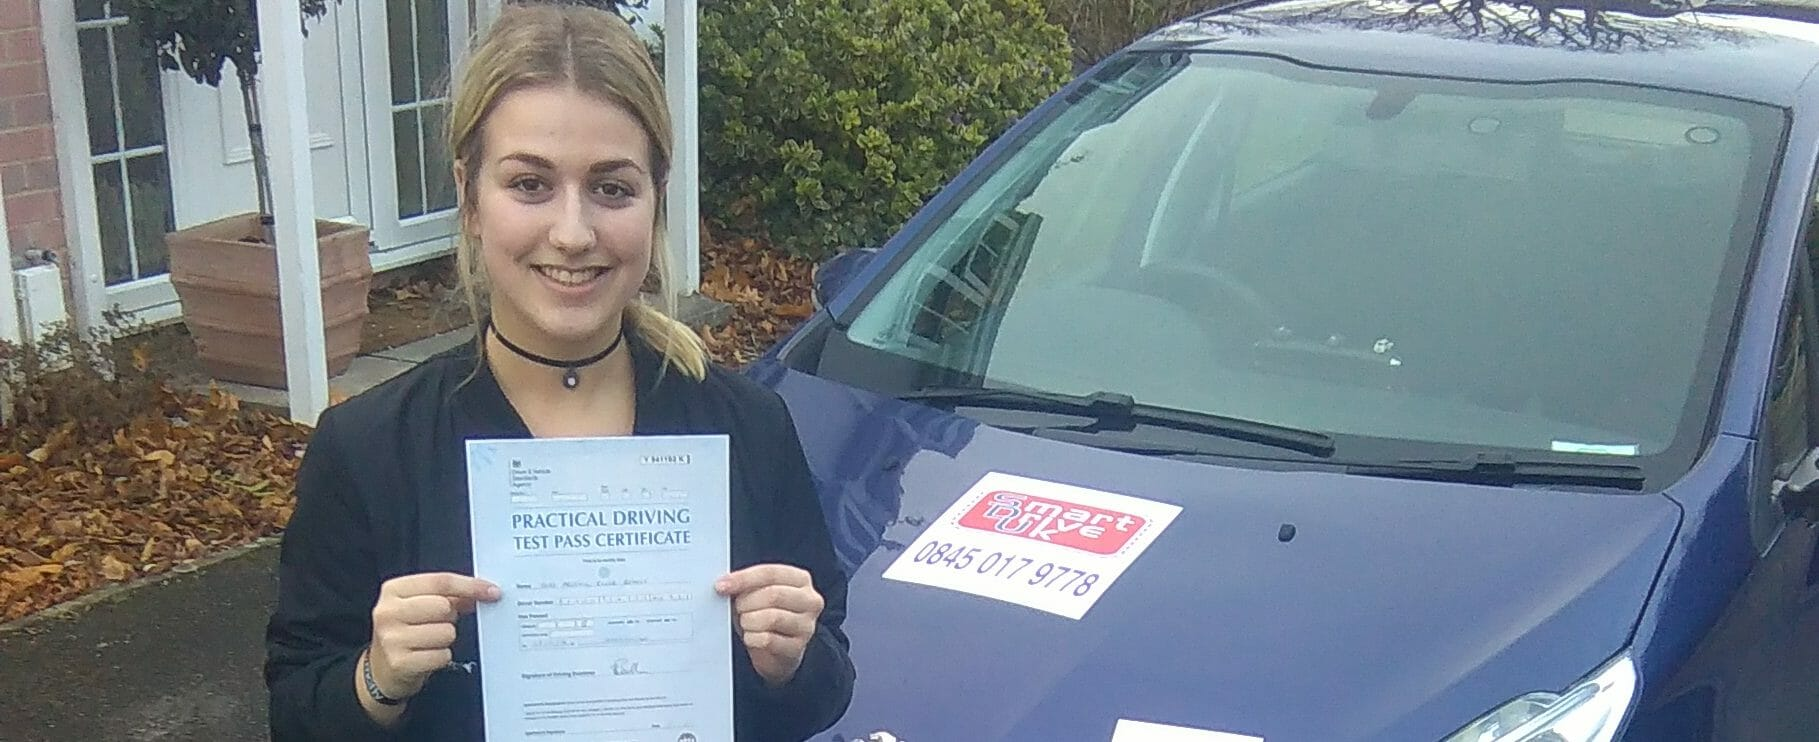 Well Done to Abigail Beadle of Worthing